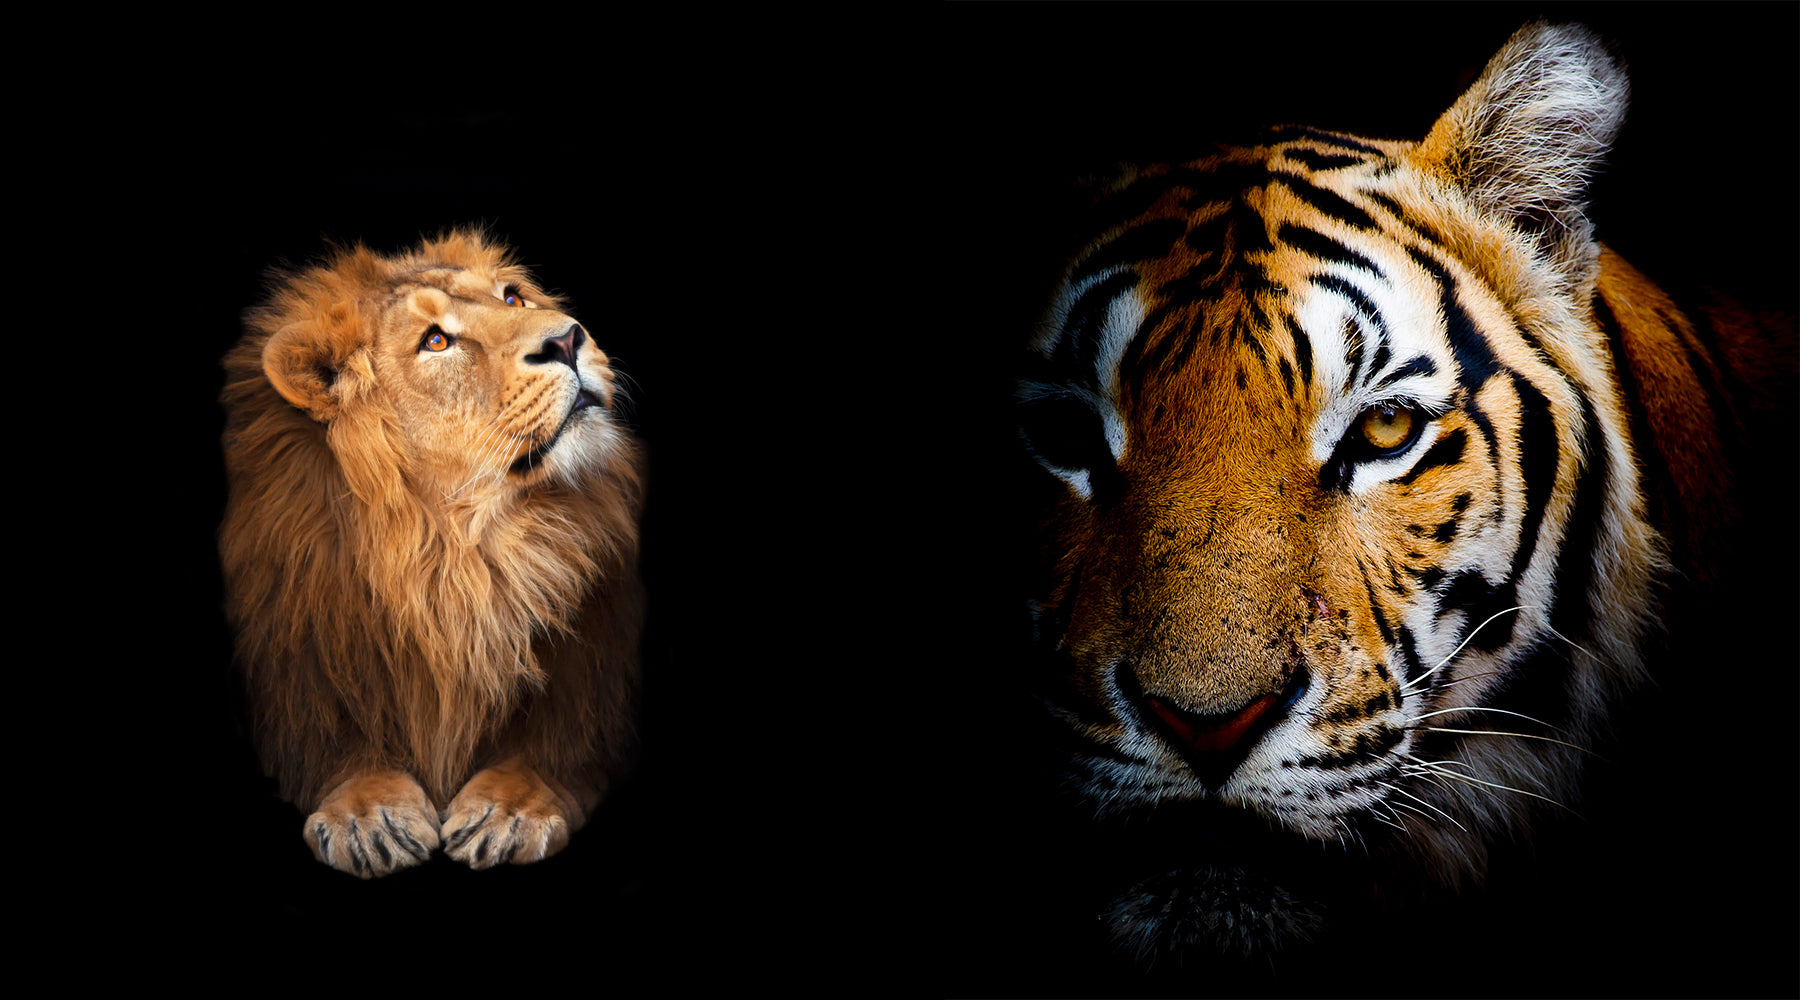 Lion and Tiger on Black Background.  Vanishing Species Collection